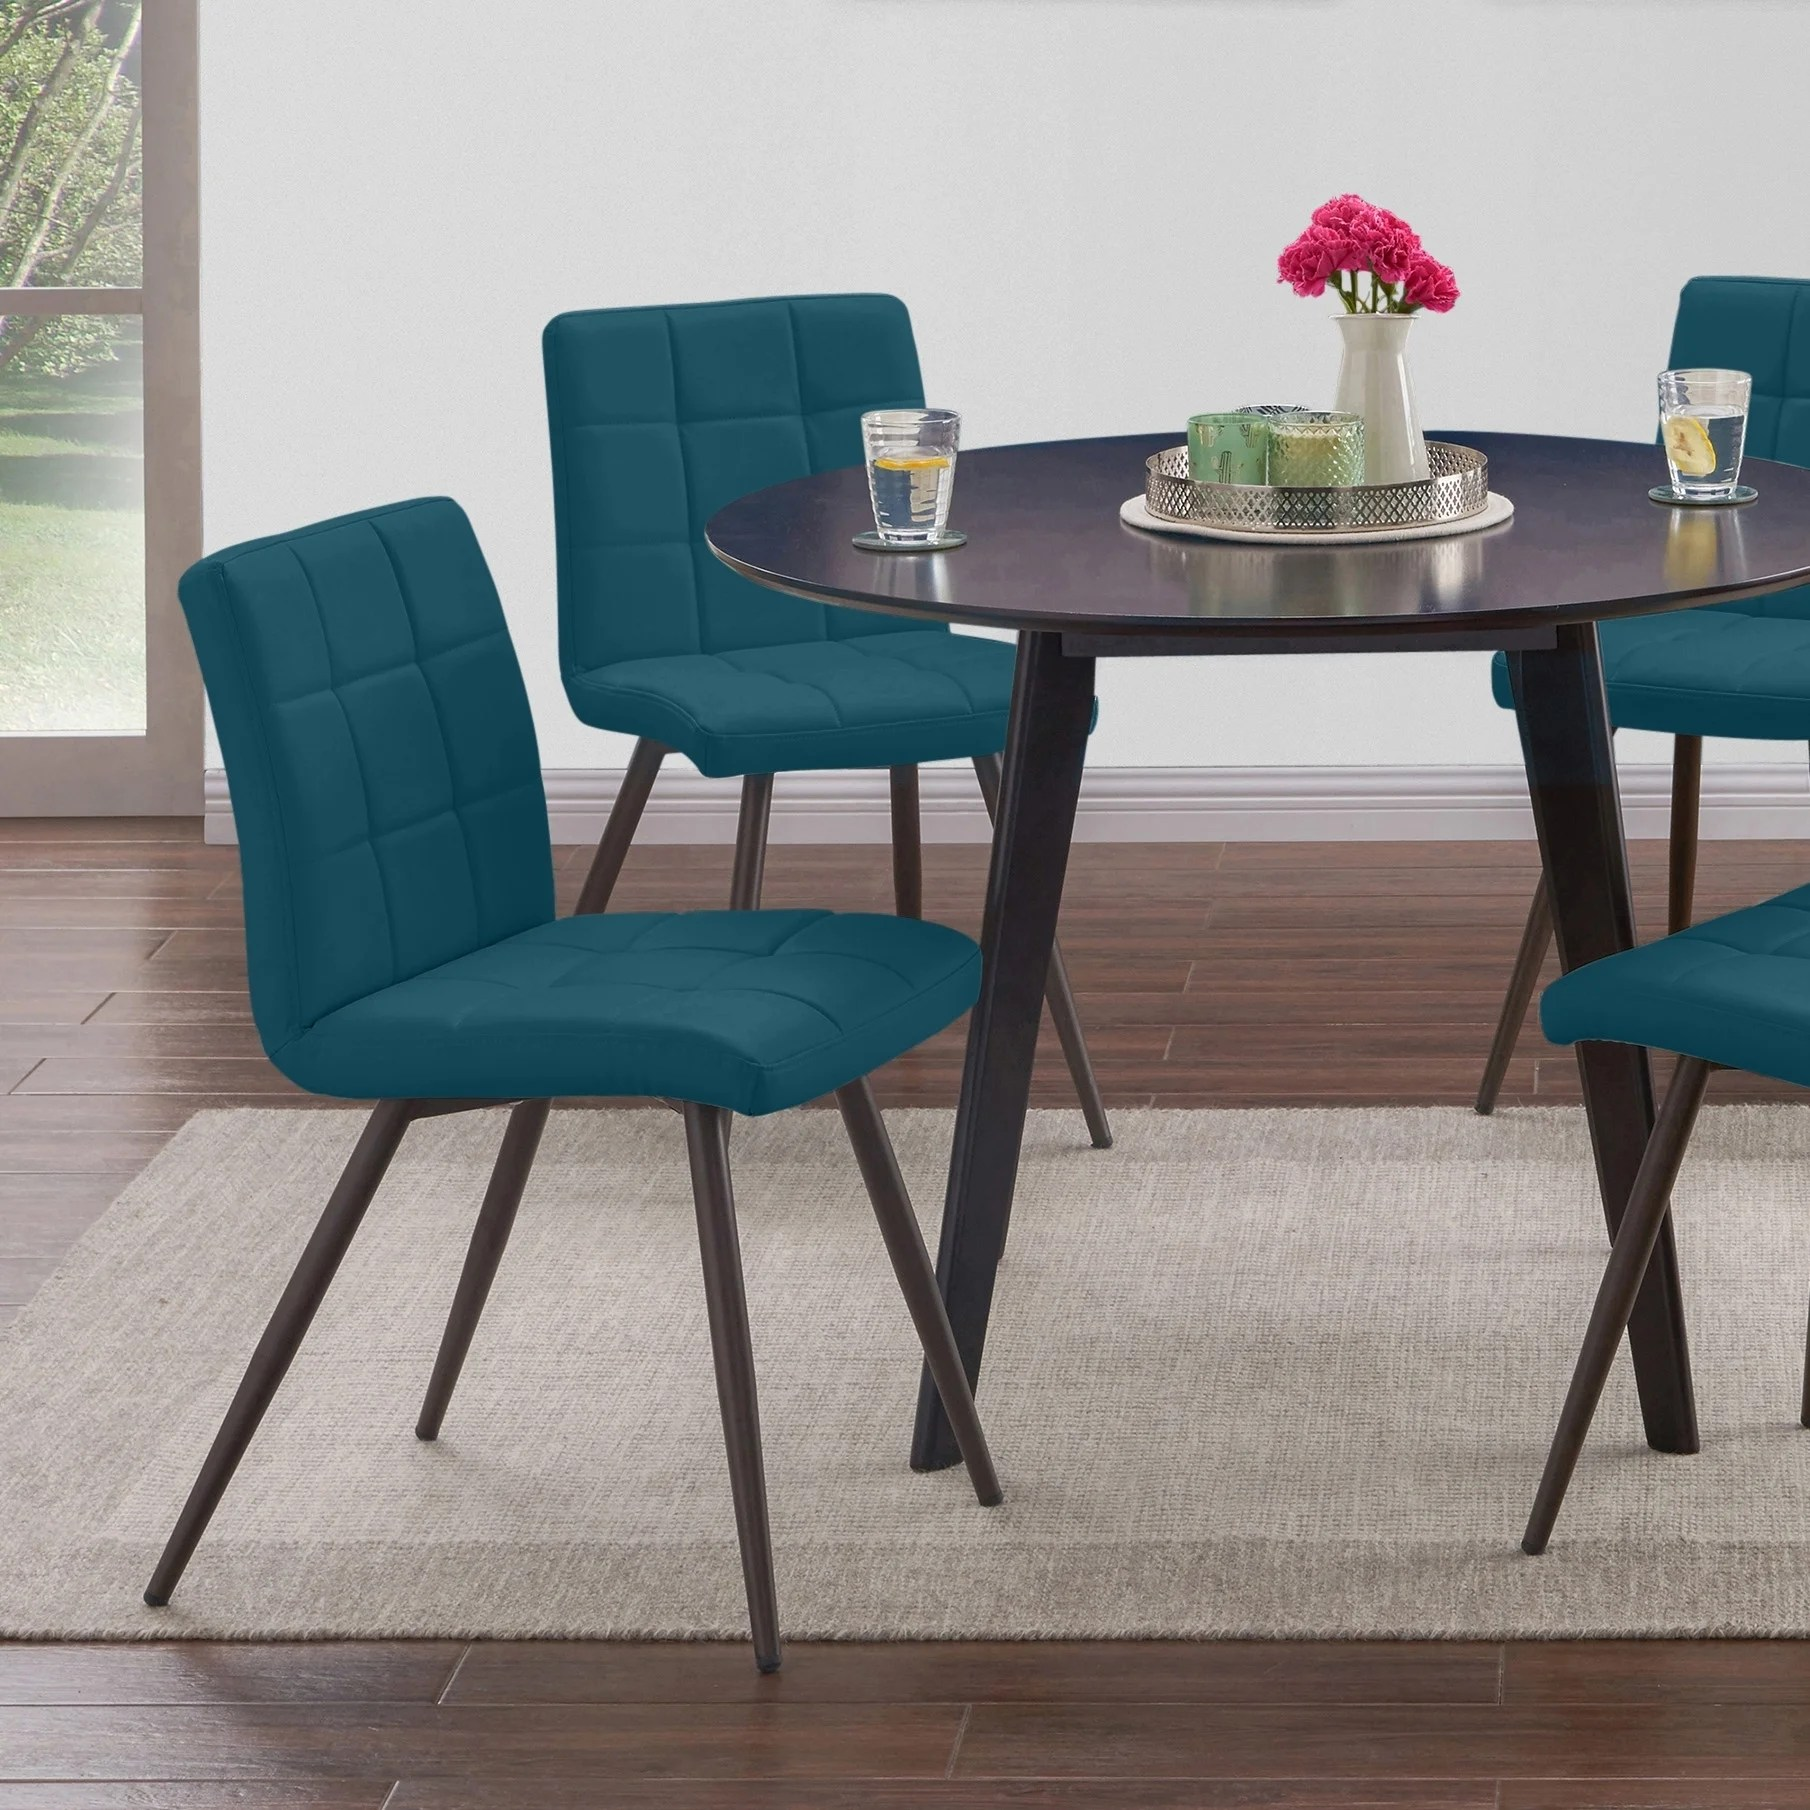 Handy Living Manzanola Blue Faux Leather Armless Upholstered Dining Chairs Set Of 4 Overstock 22578796